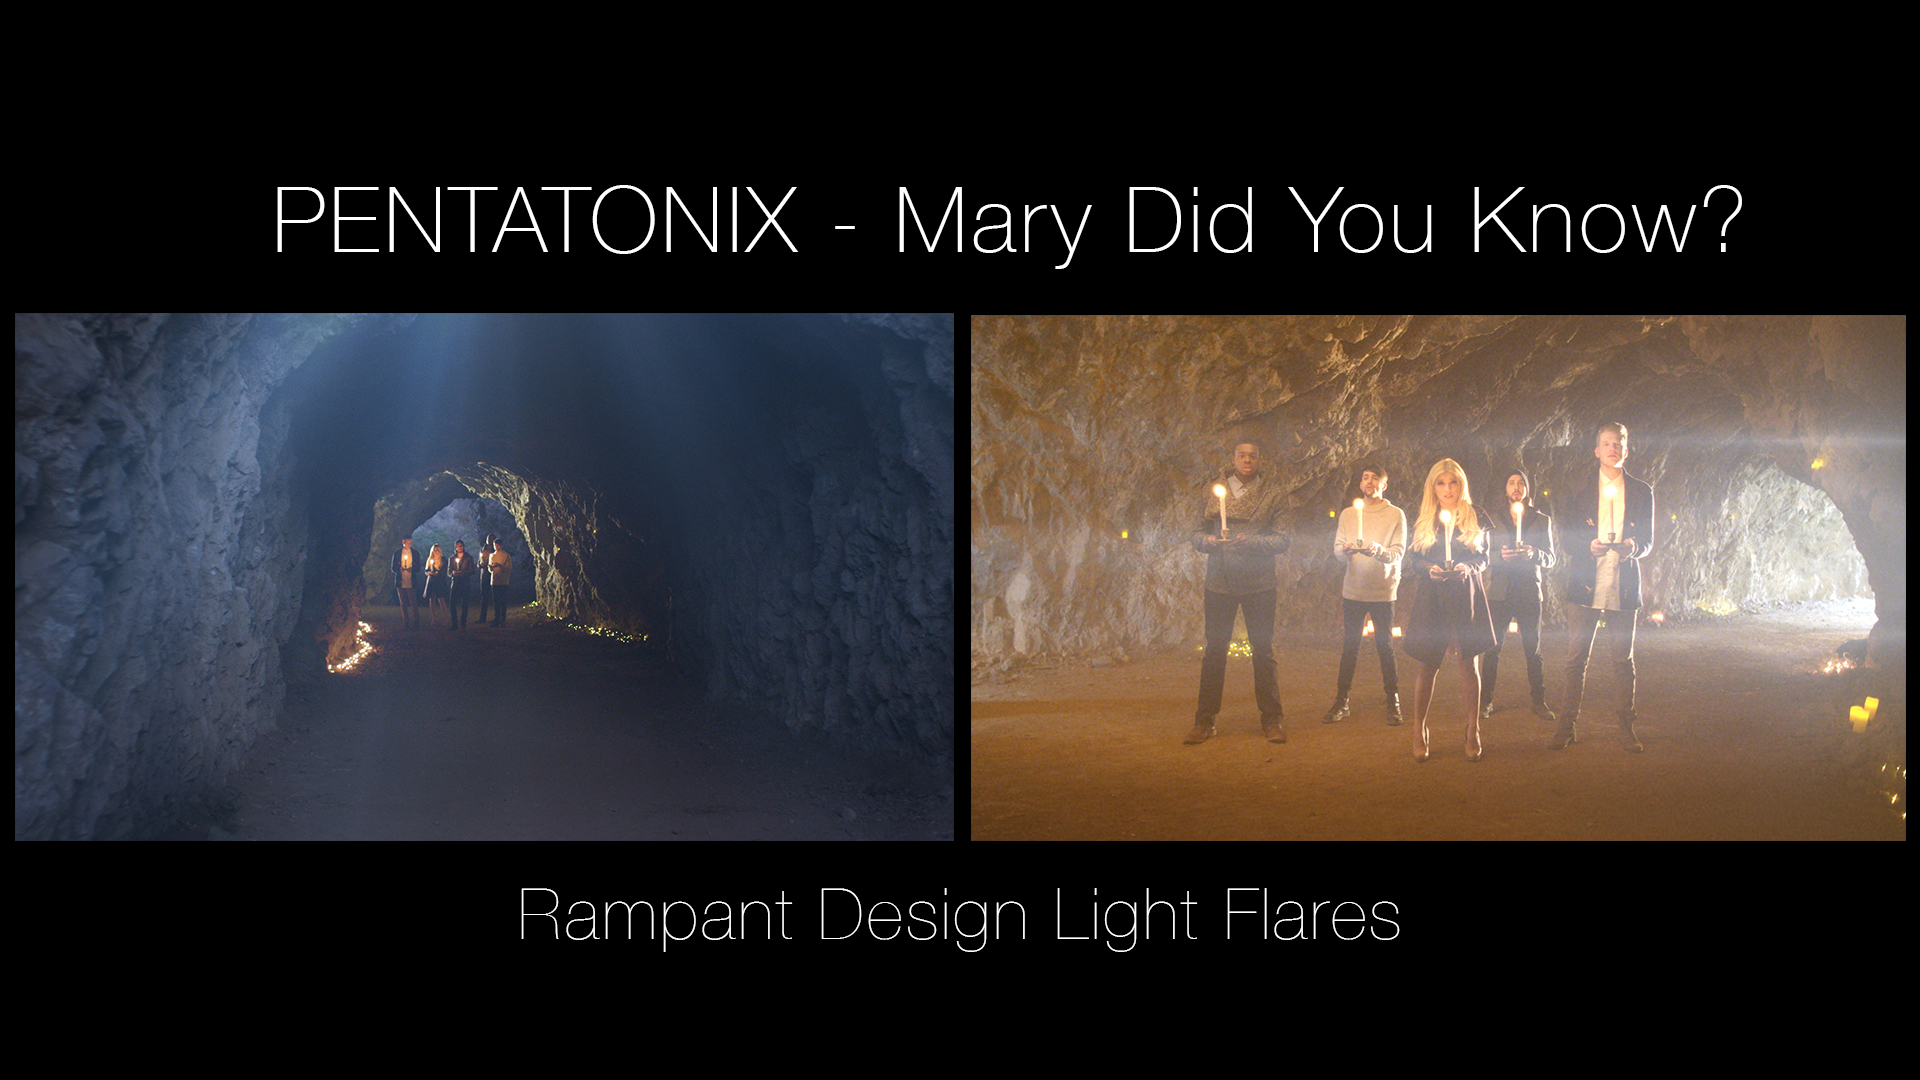 Rampant Design Light Flares in PENTATONIX music video